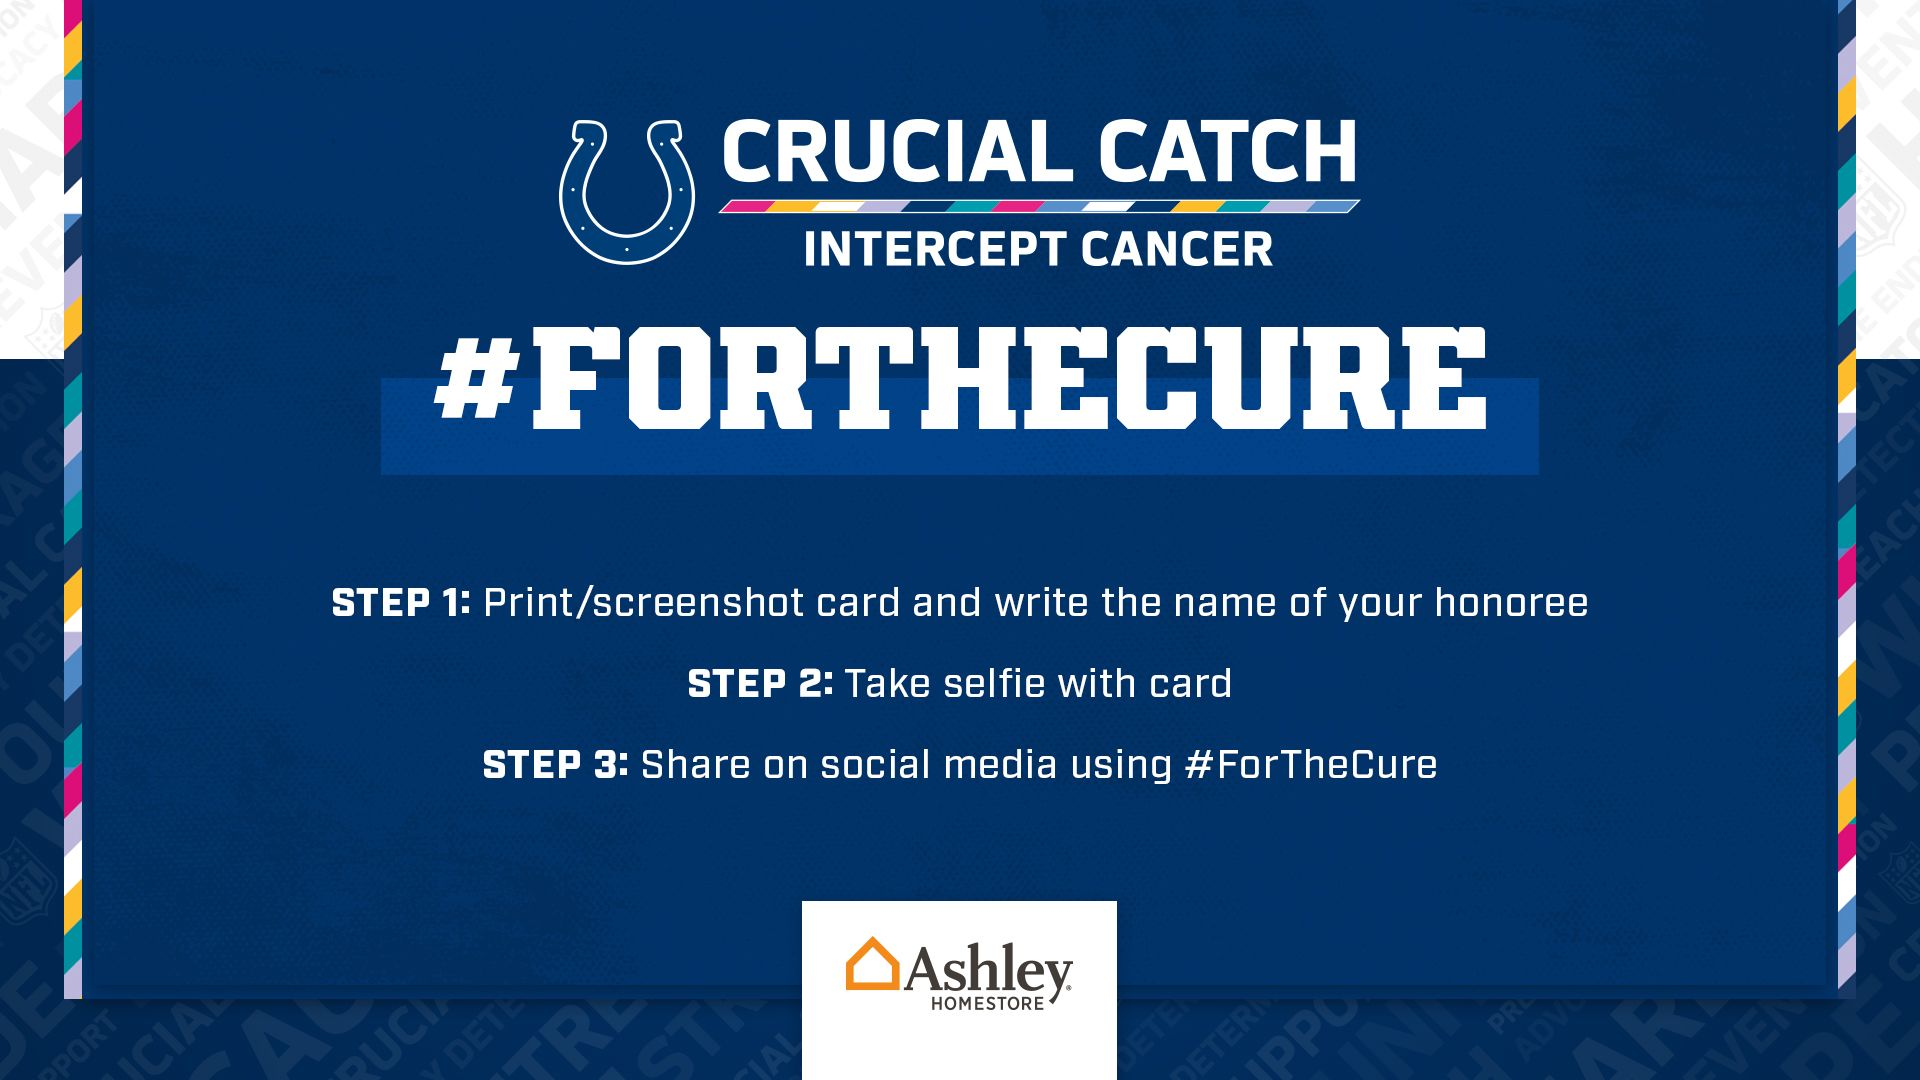 2020_CR_CrucialCatch_Honoree_Social_Instructions_1920x1080_web